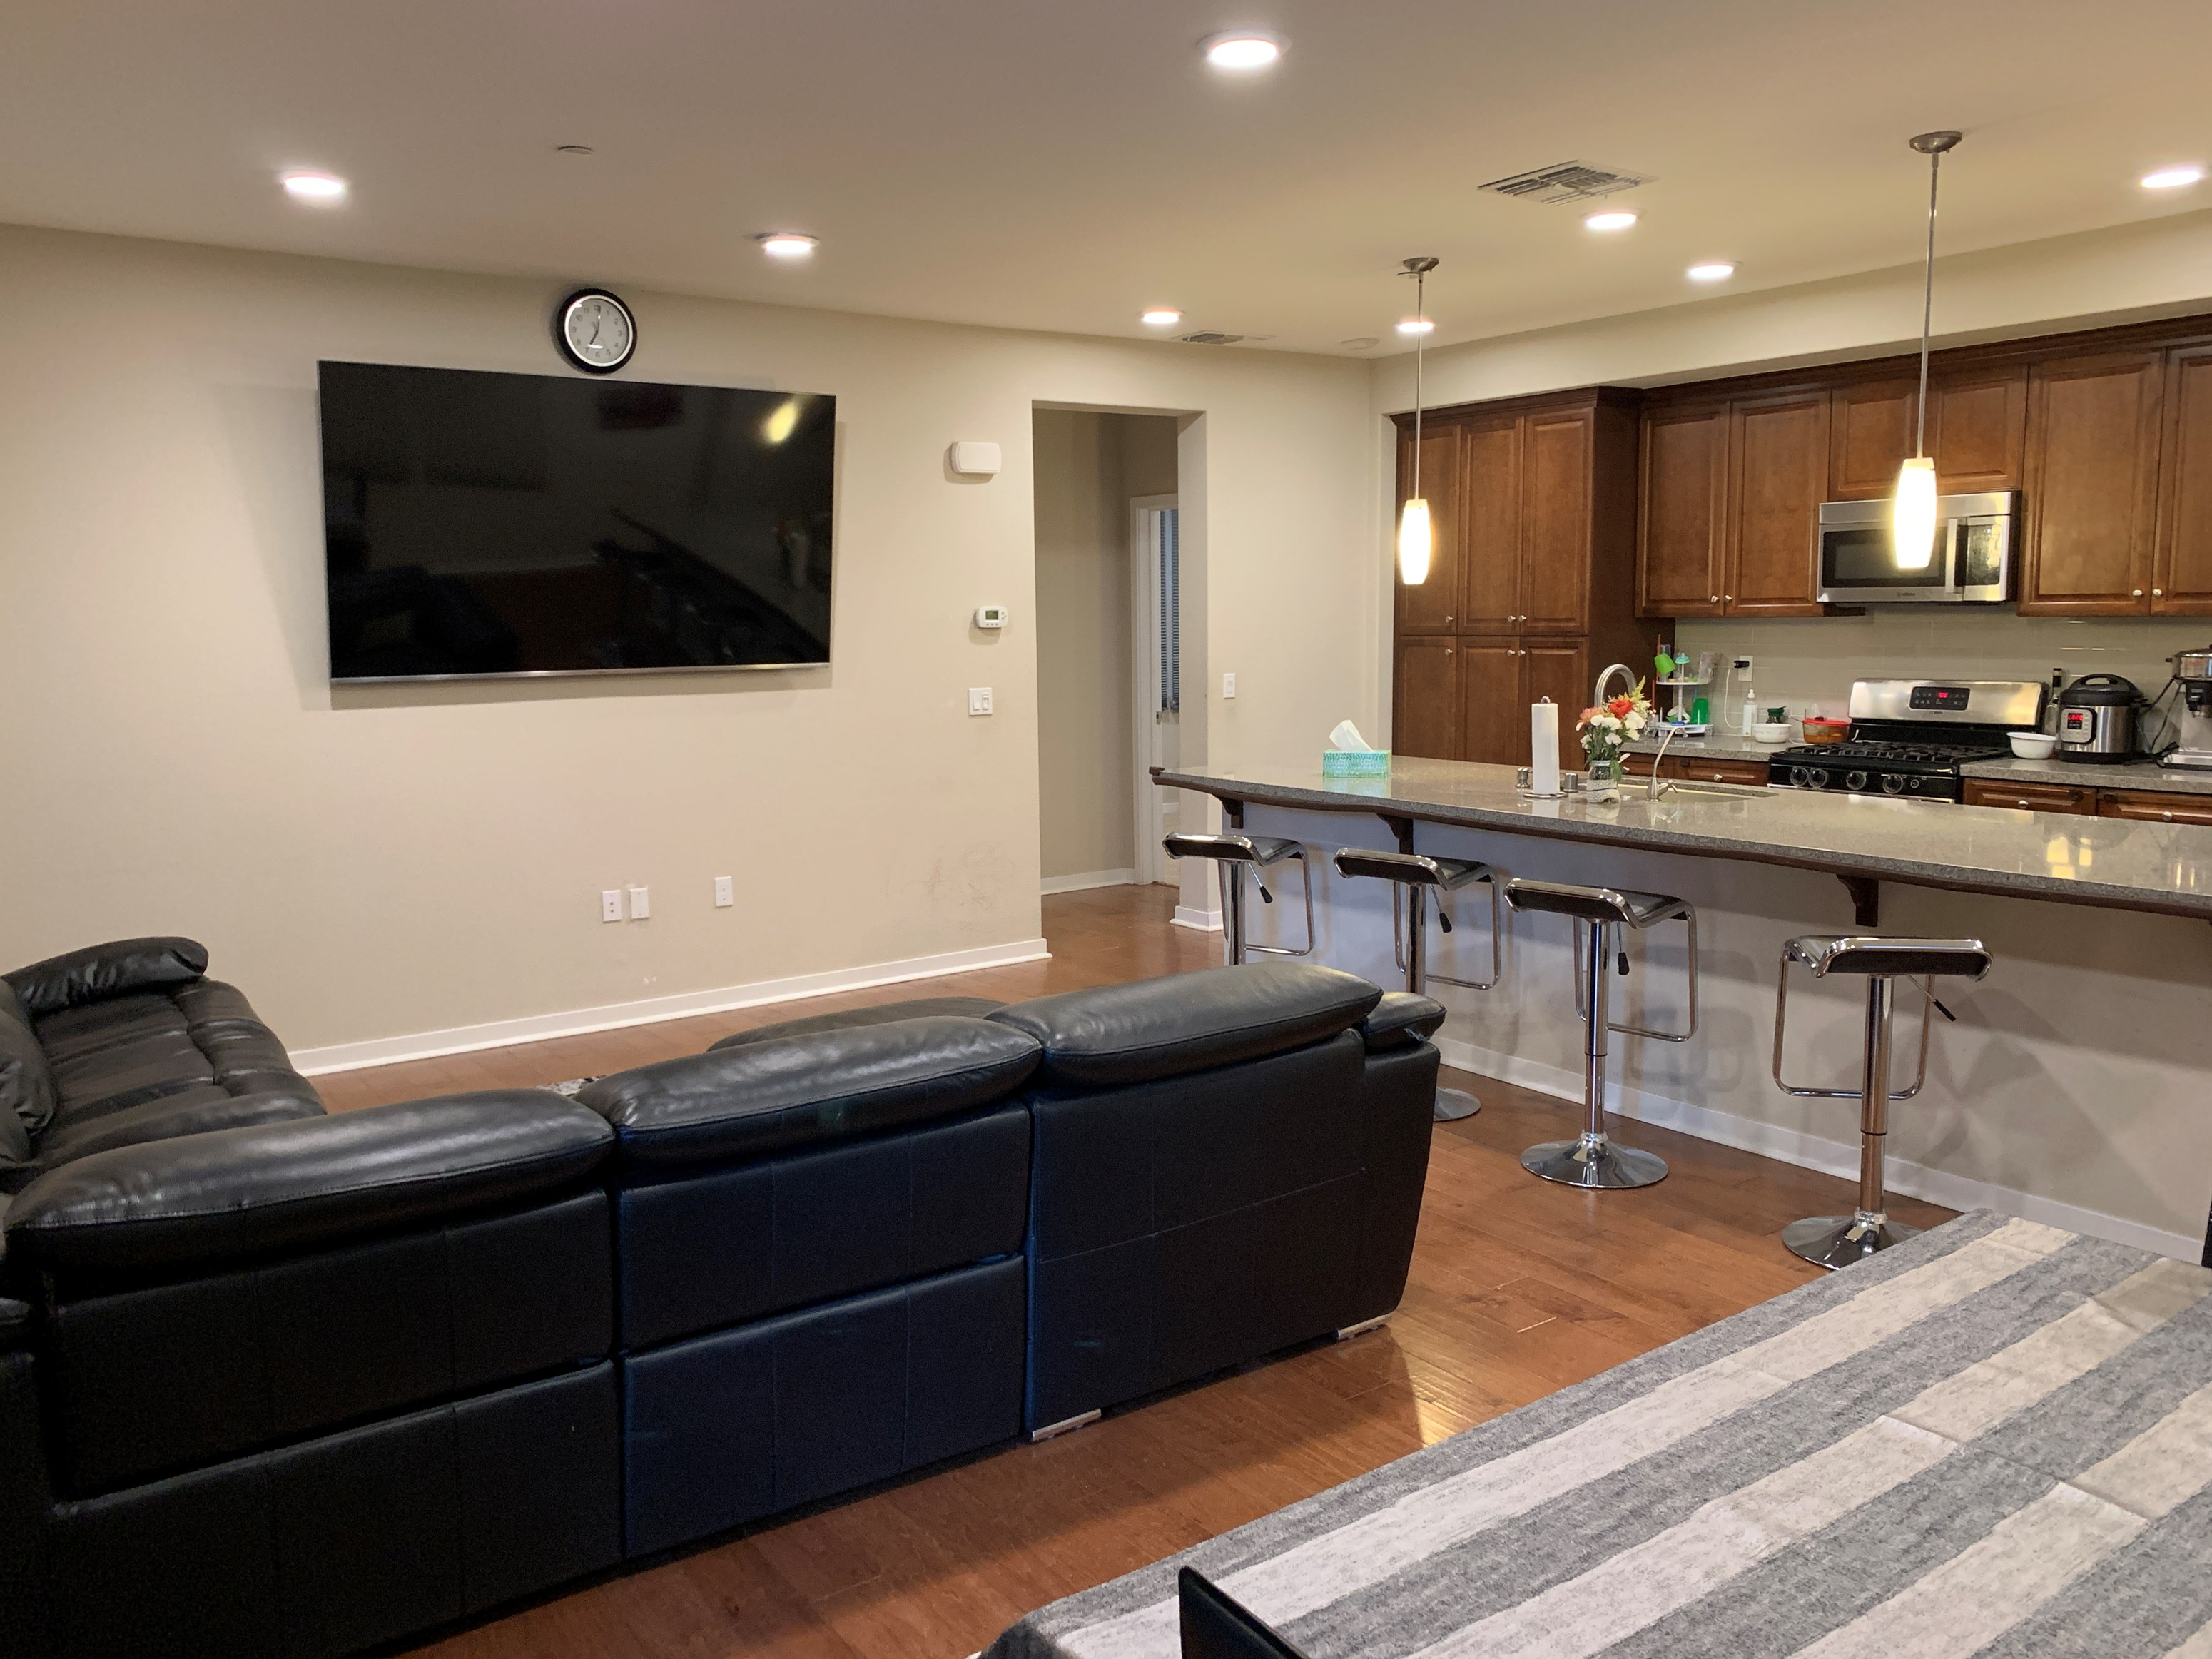 Rooms for Rent in Bay Area – Apartments, Flats, Commercial